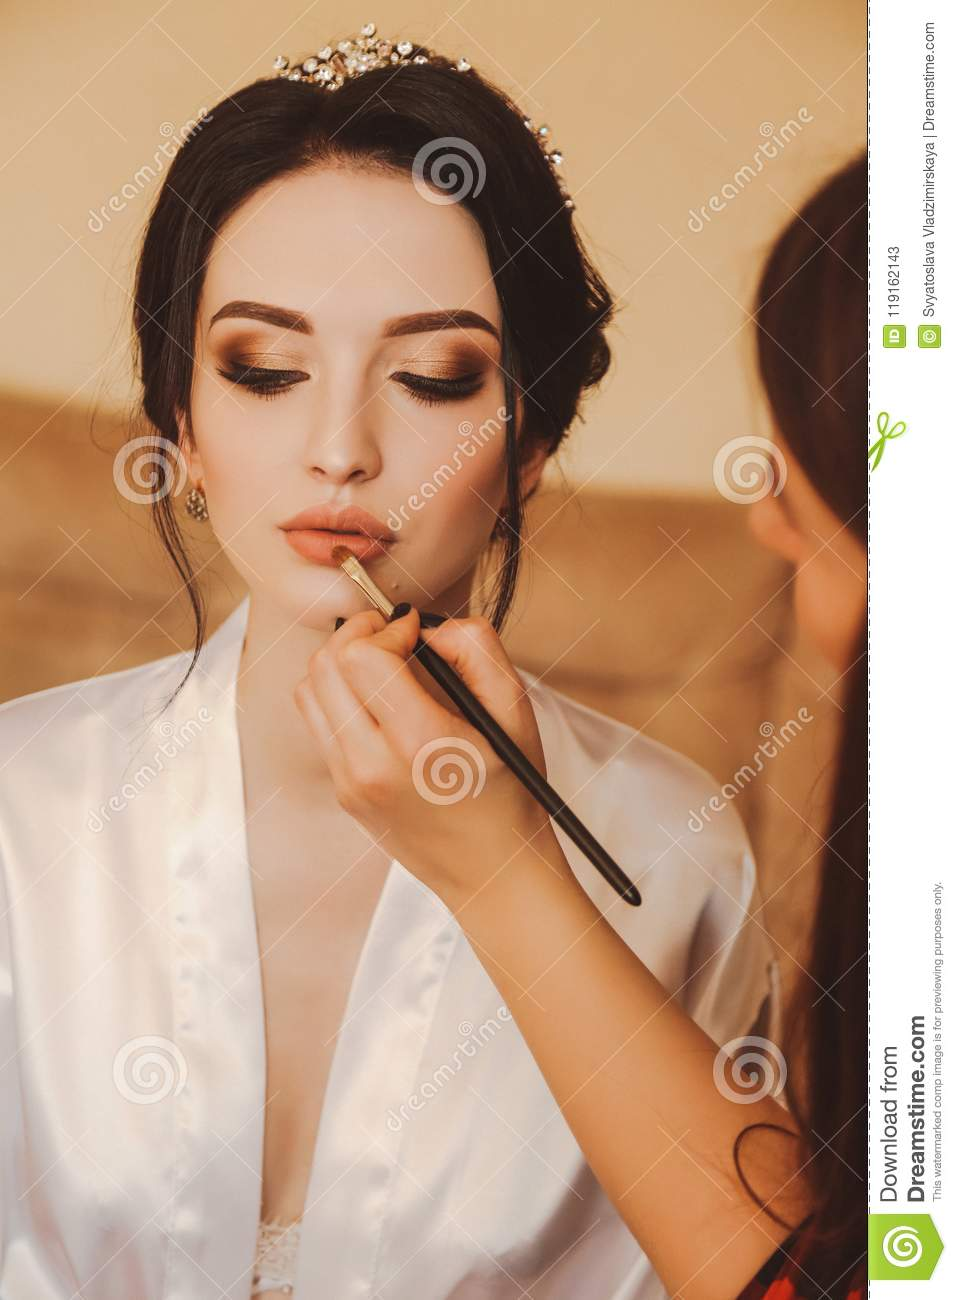 Beautiful Bride With Dark Hair Preparing Herself In Her